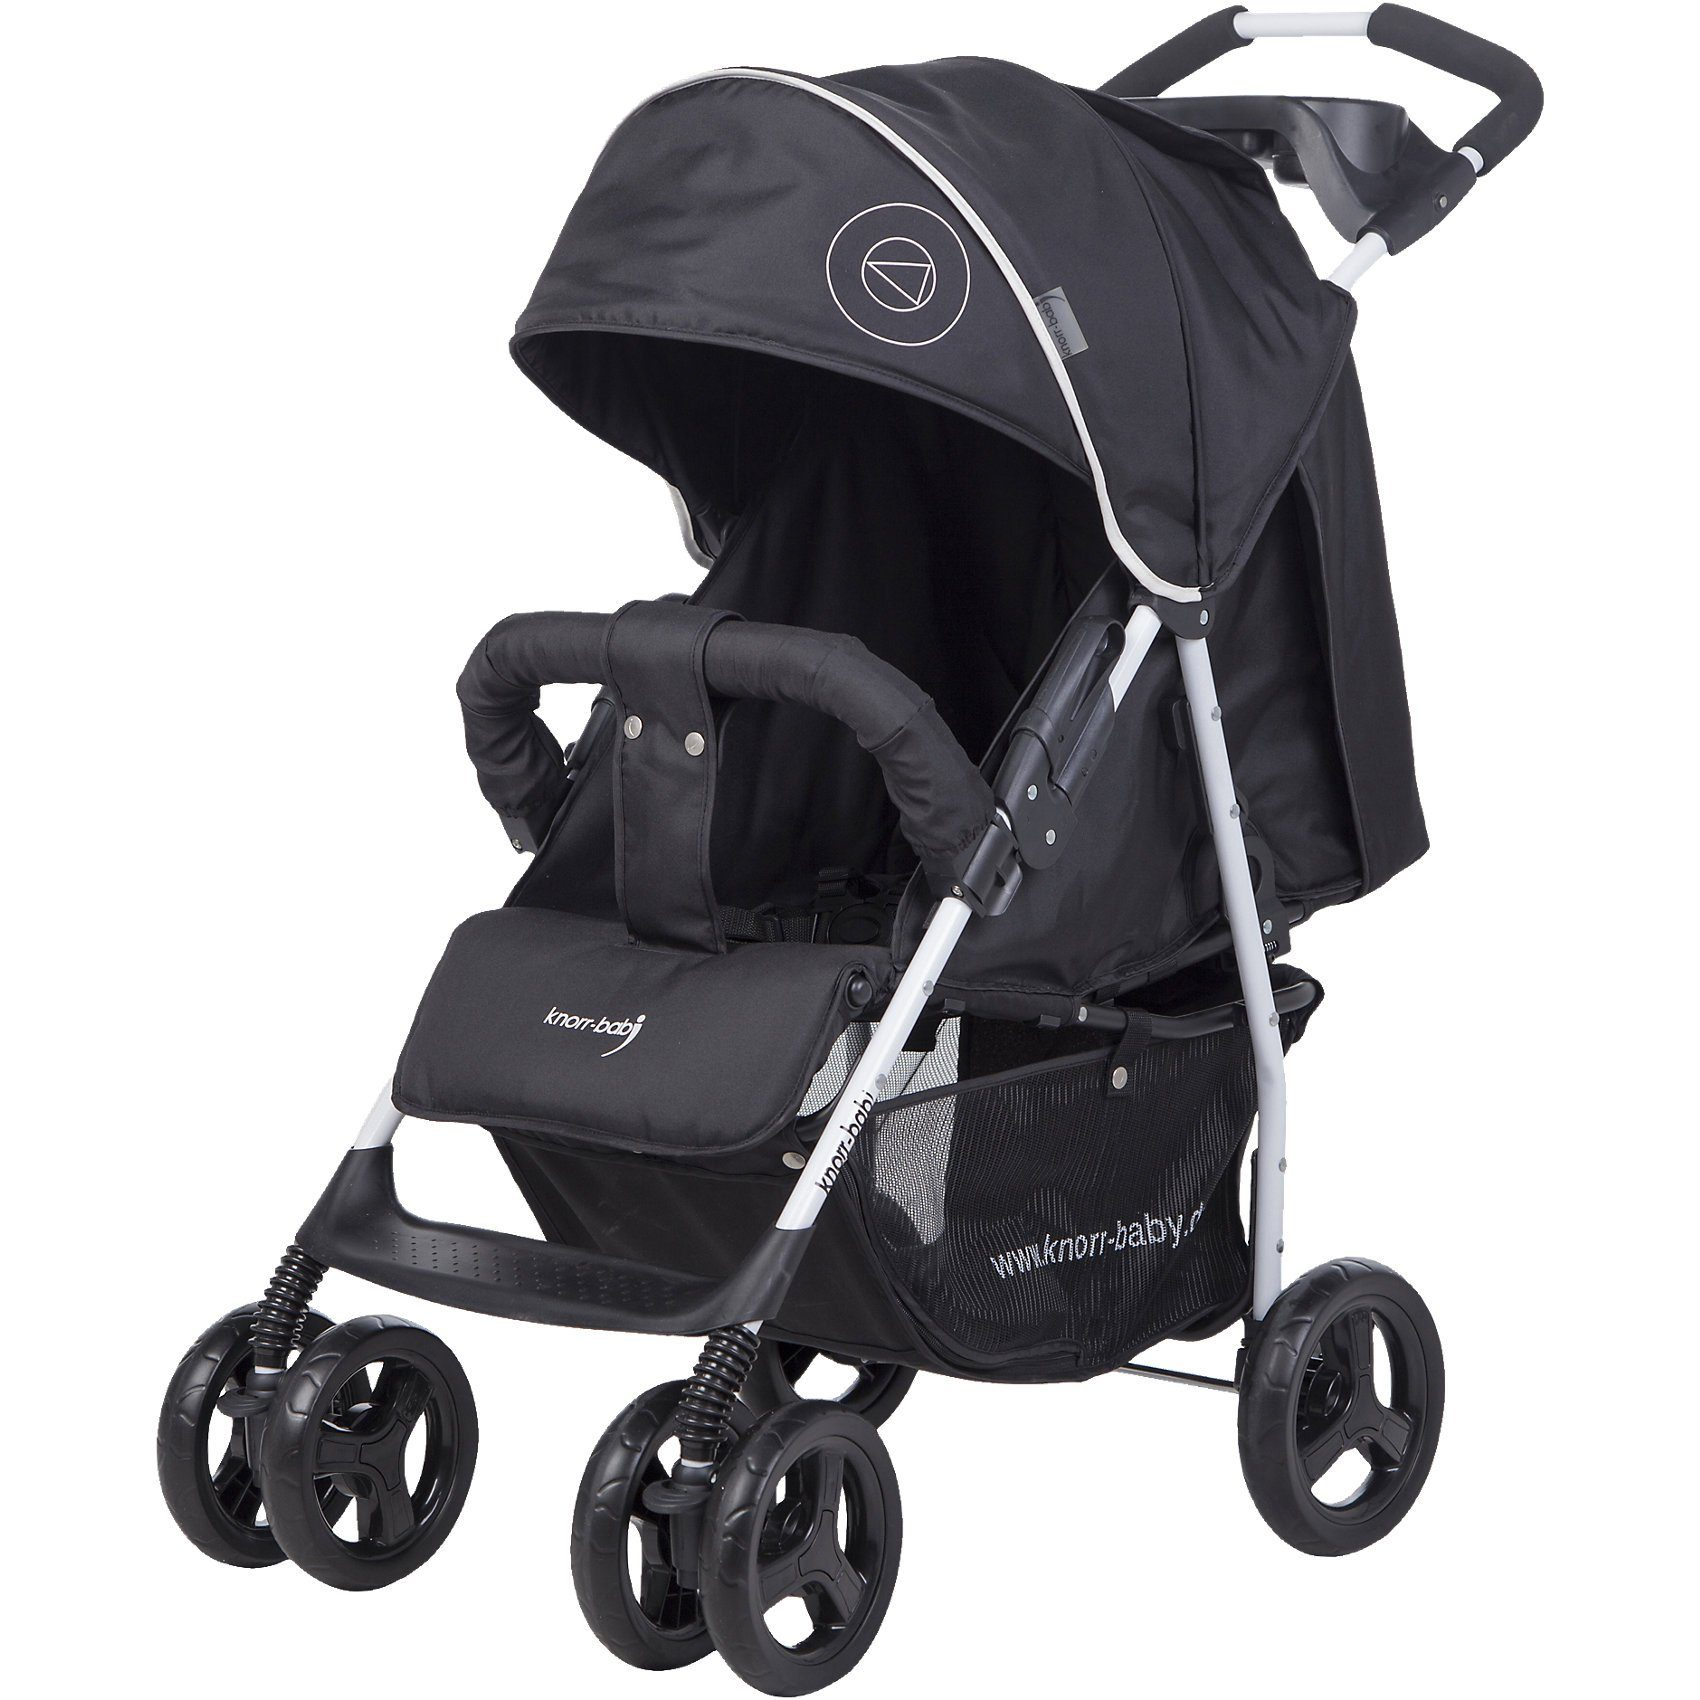 knorr-baby Sportwagen Vero XL Happy Colour, schwarz